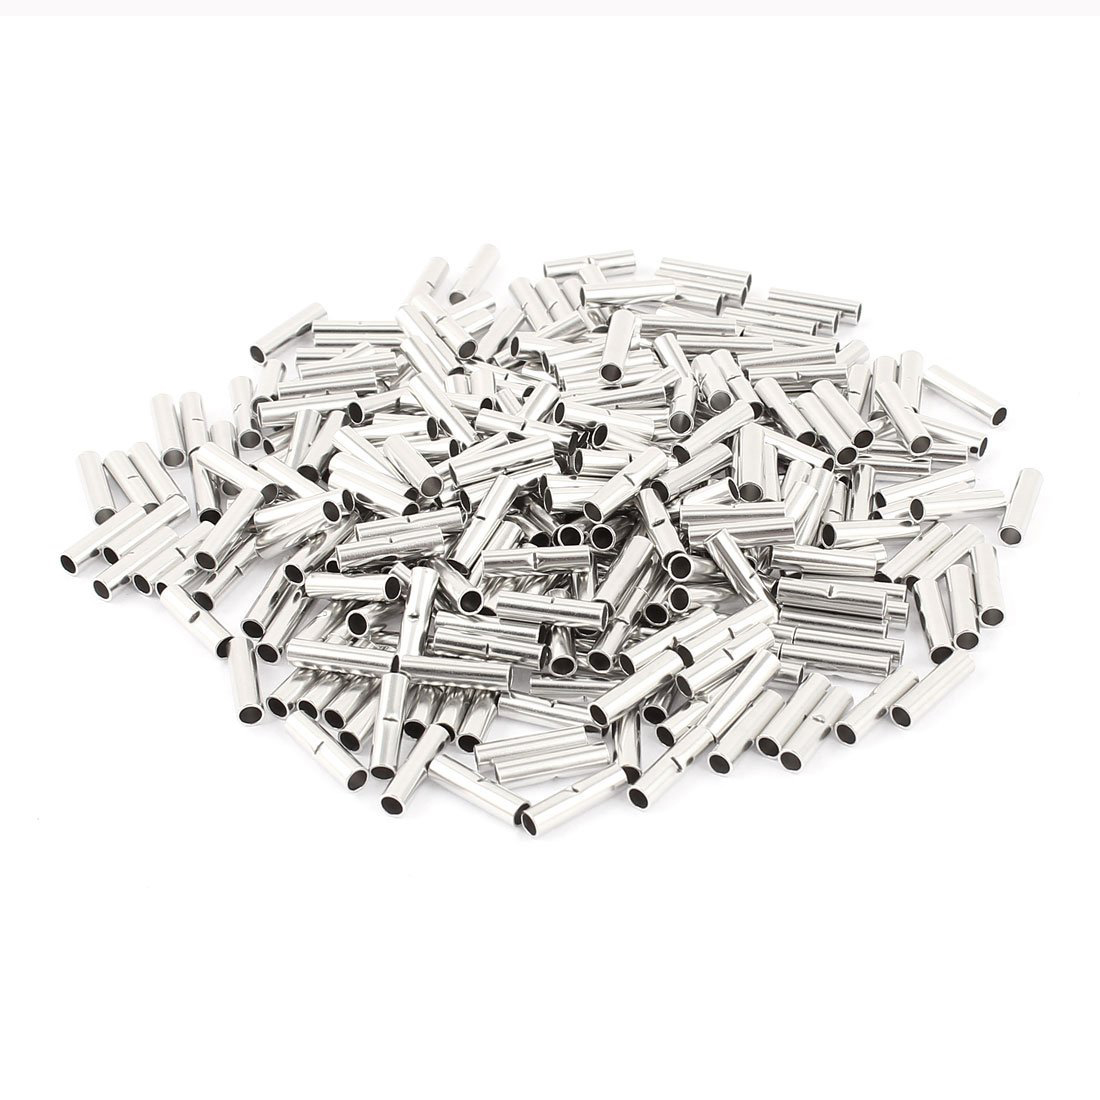 300pcs Bn 2 Uninsulated Butt Connectors Terminal For 16 14 A W G Wire In Terminals From Home